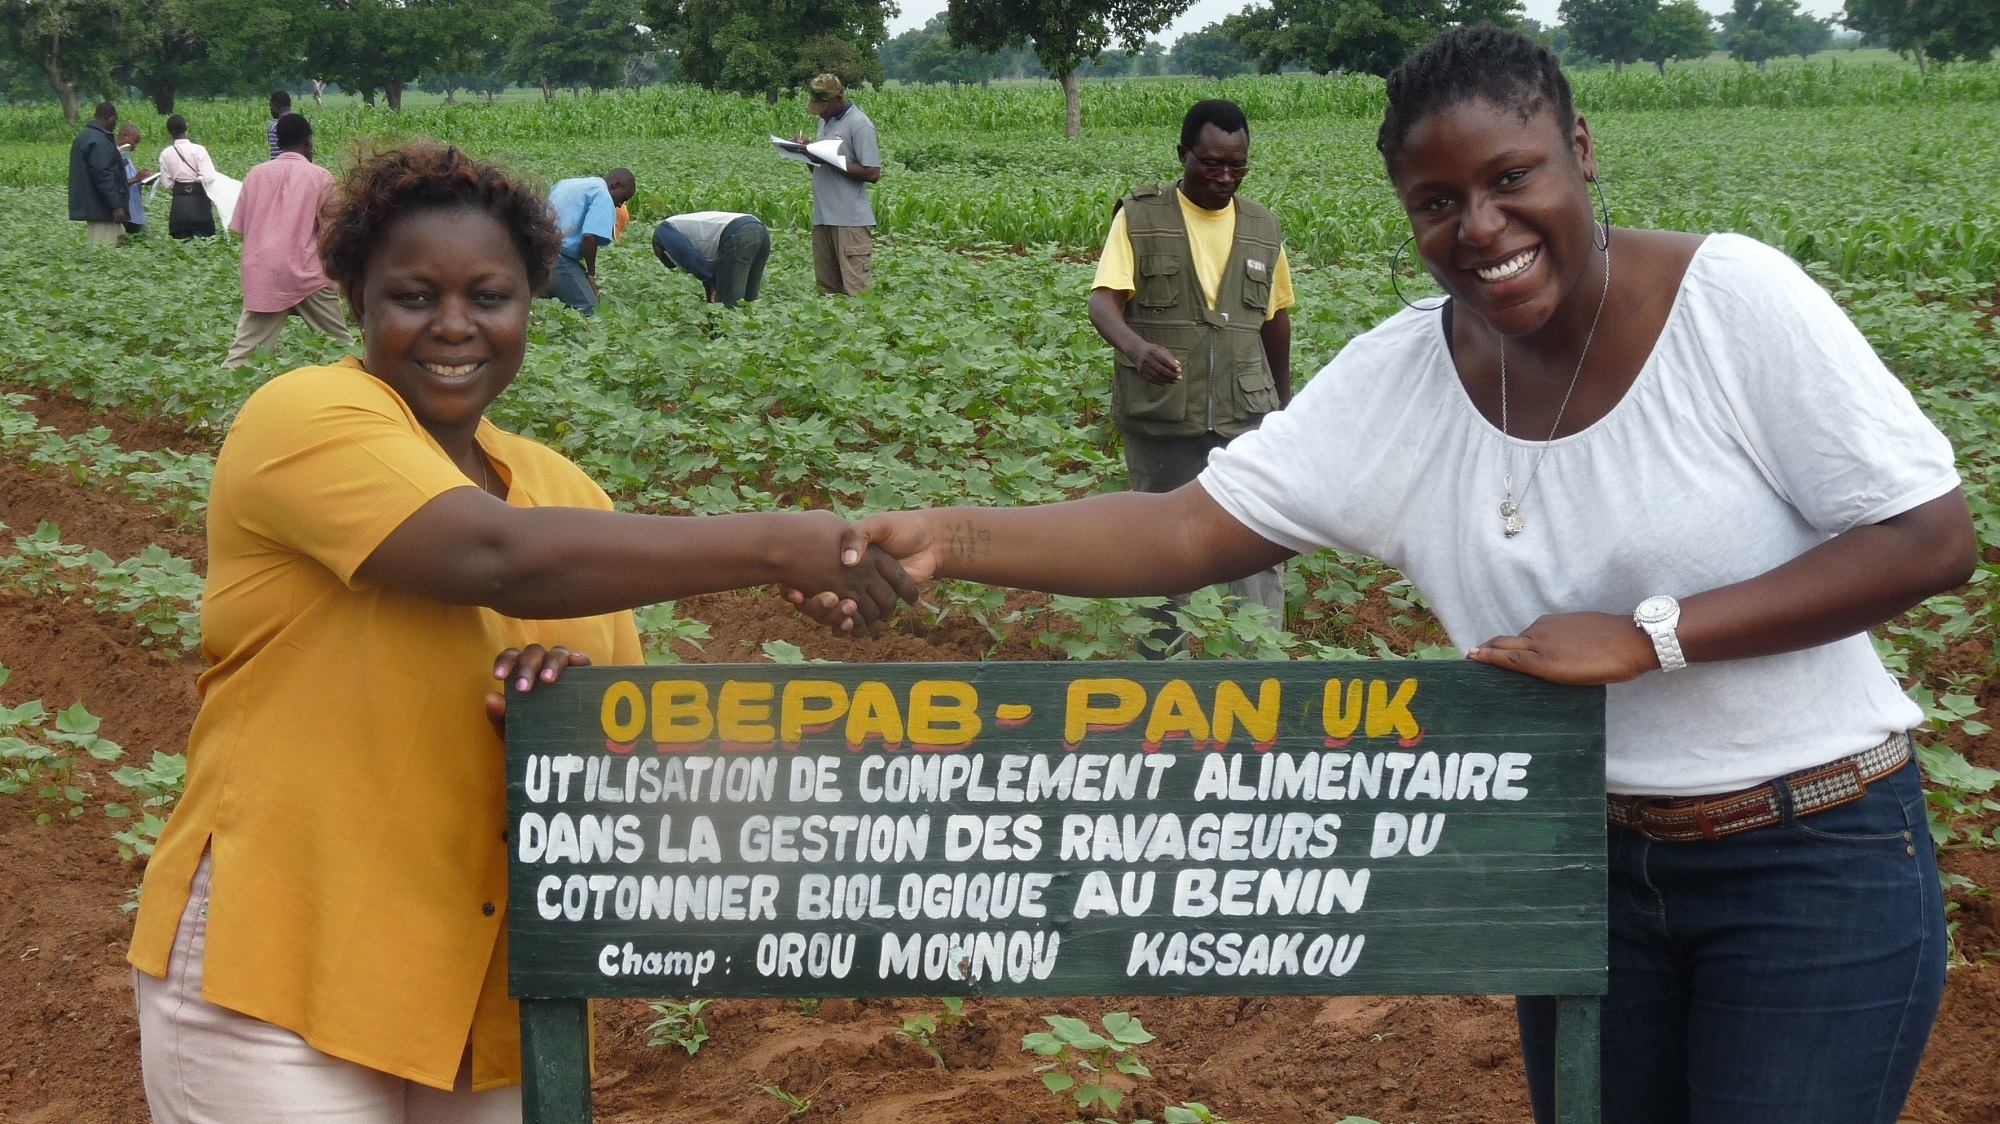 PAN UK in partnership with OBEPAB in Benin